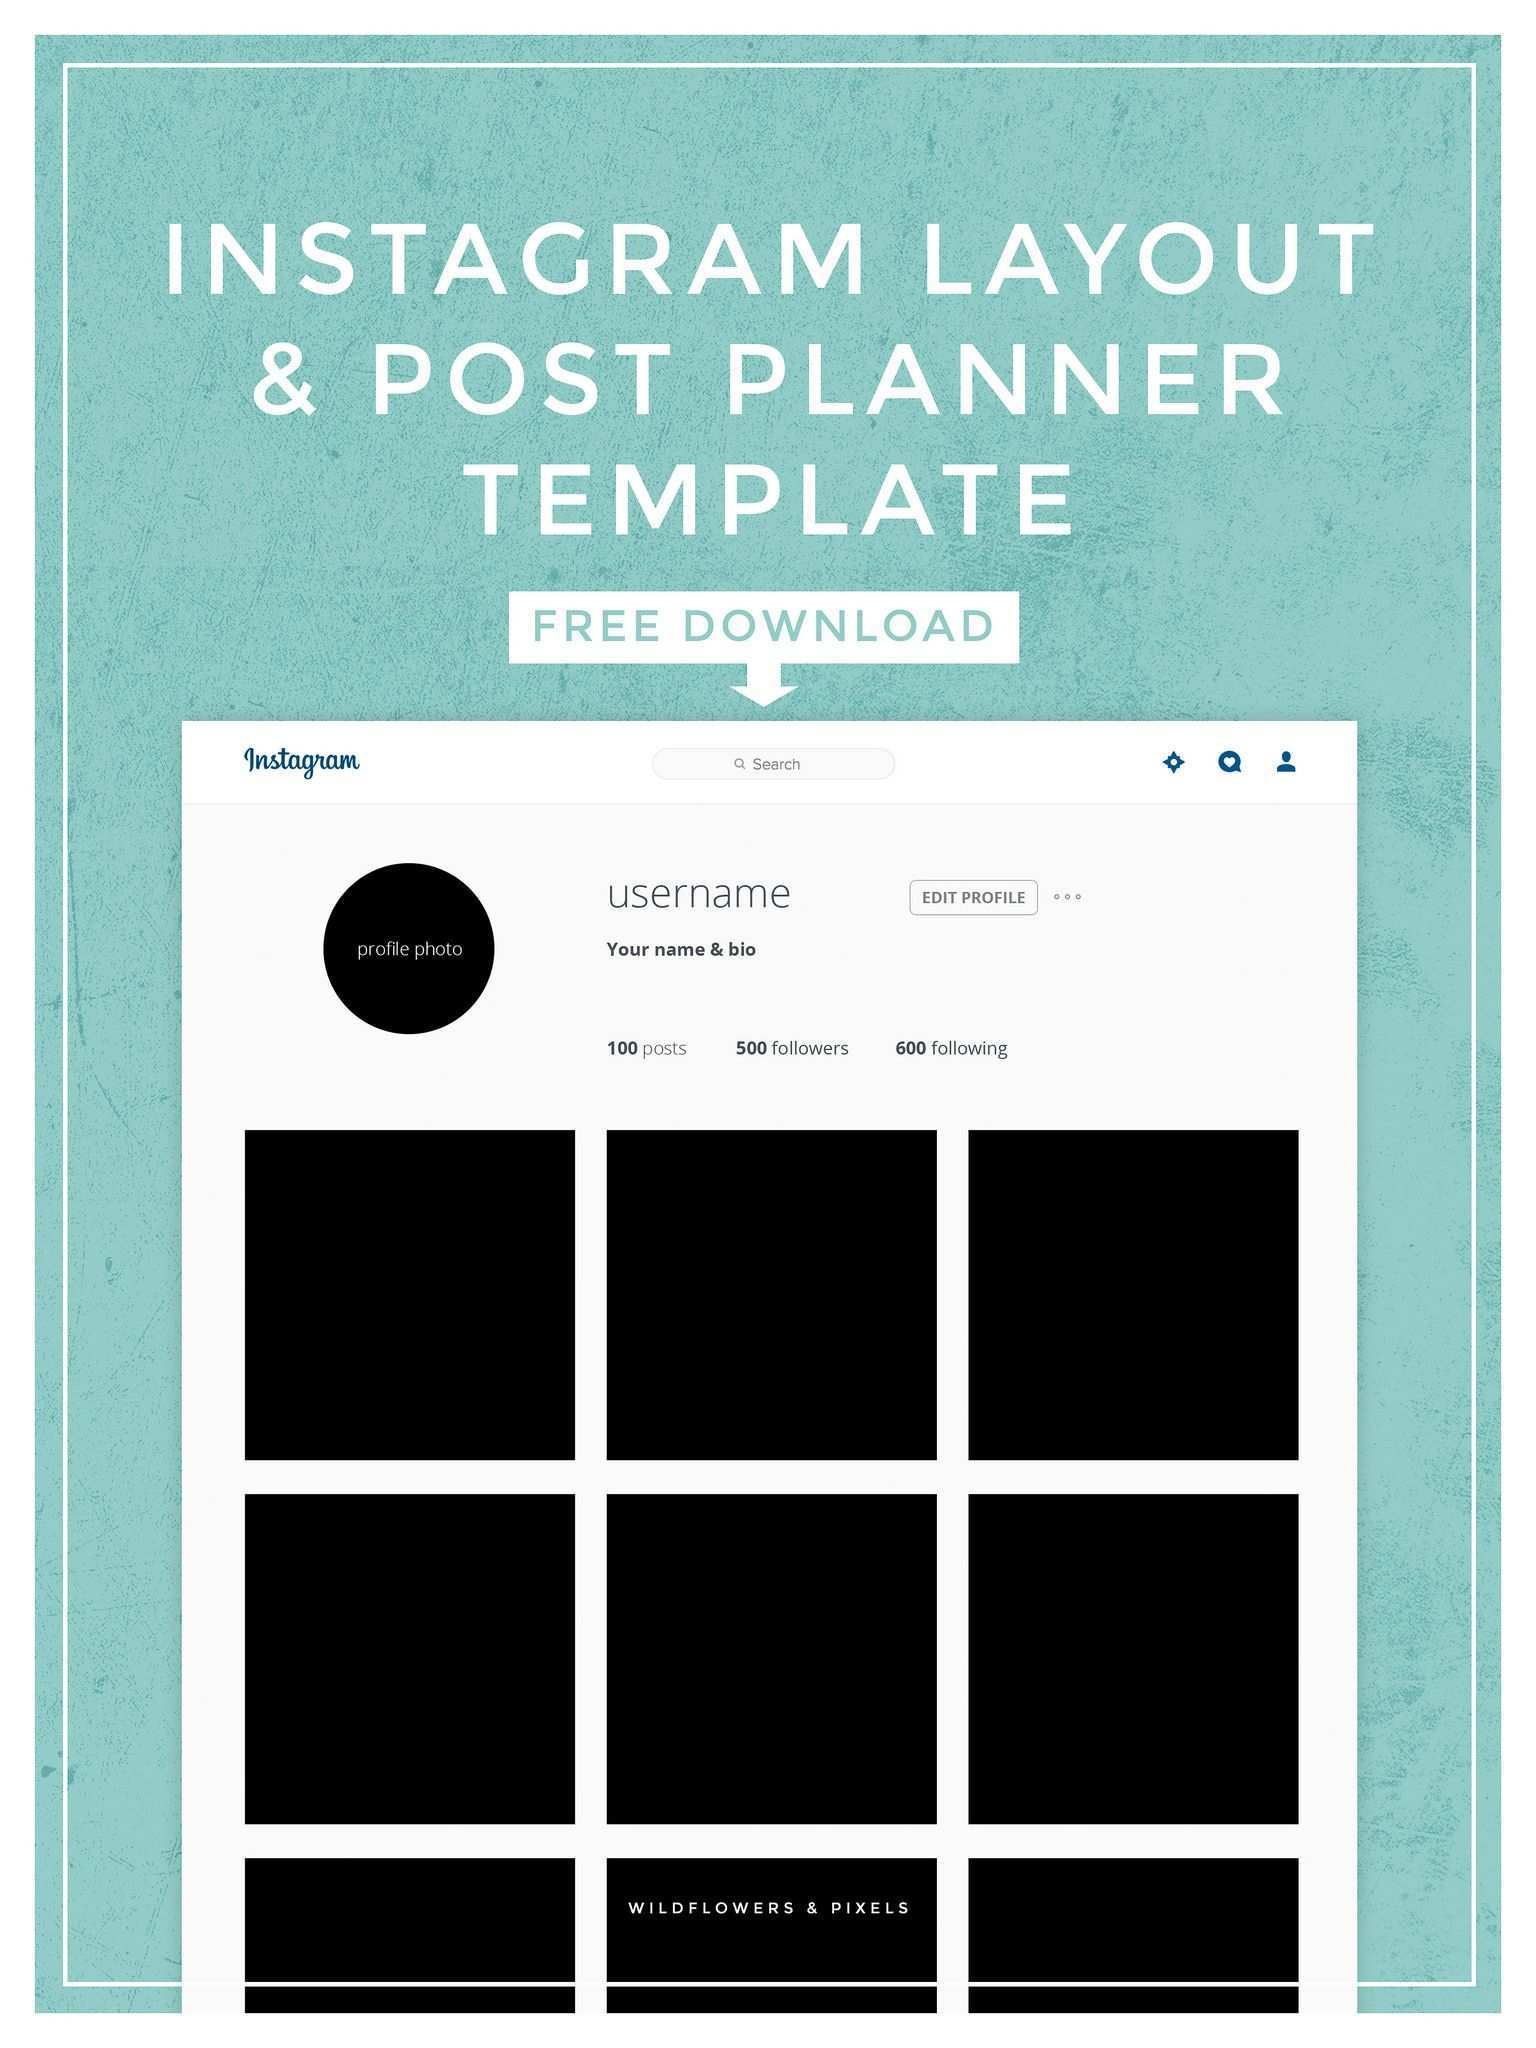 Instagram Layout Post Planner Template Instagram Layout Instagram Planner Instagram Post Template